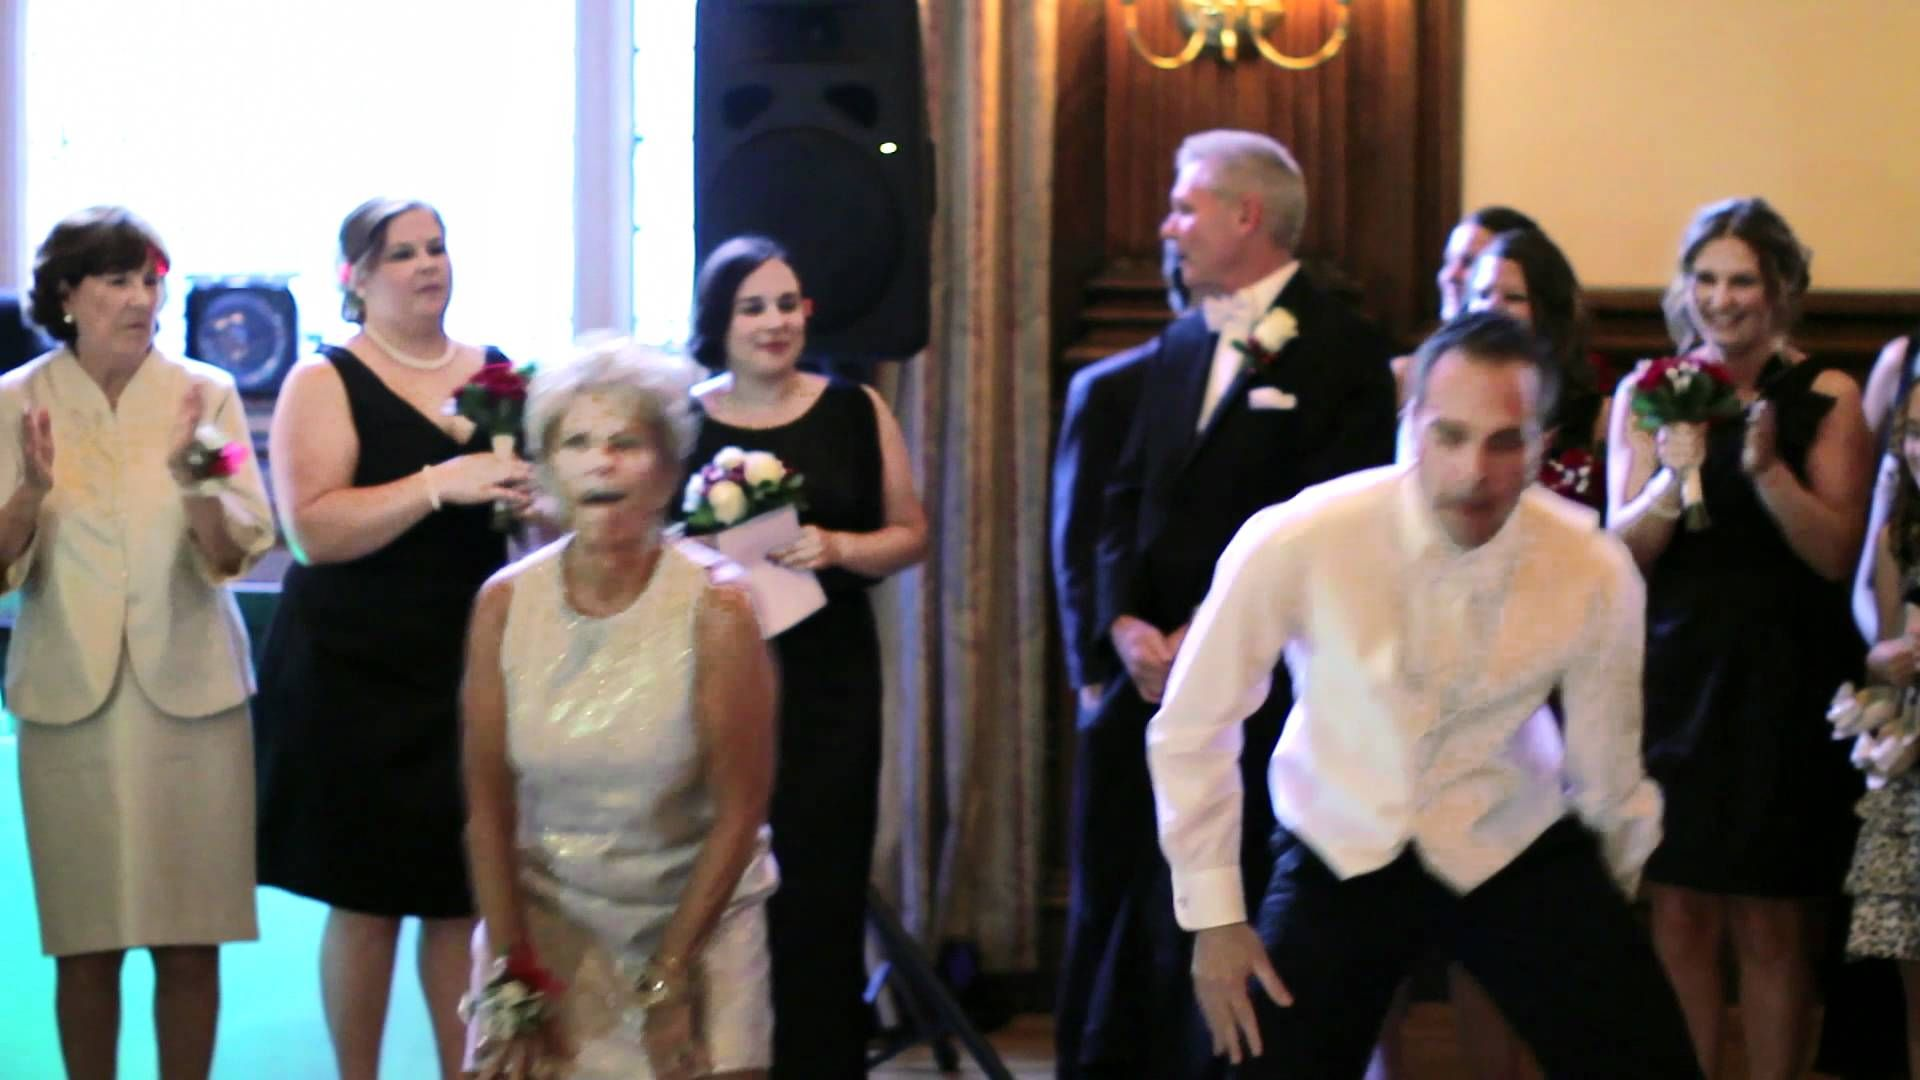 Best Mom And Son Wedding Dance Ever Philadelphia These Small Videos Are So Good This Is Really Fun For The Mother Of Groom Her To Do